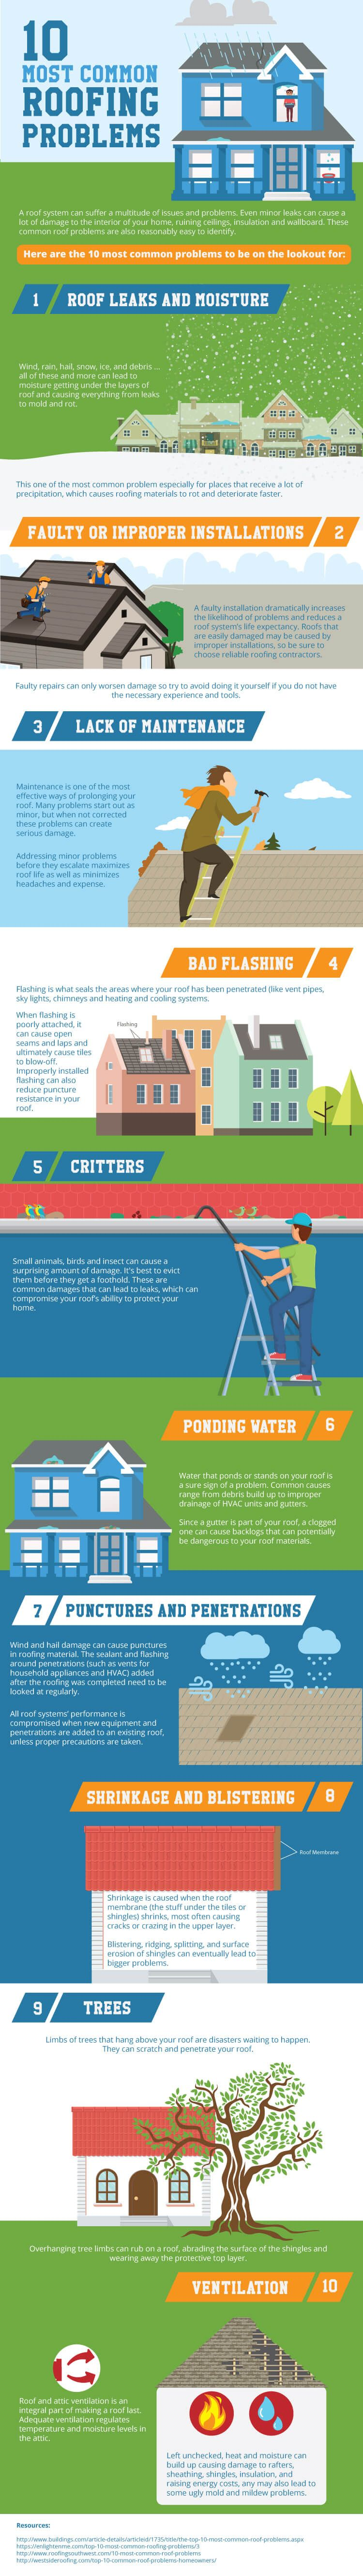 A Roof System Can Suffer A Multitude Of Issues And Problems Even Minor Leaks Can Cause A Lot Of Damage To The Interio Affordable Roofing Roof Problems Roofing